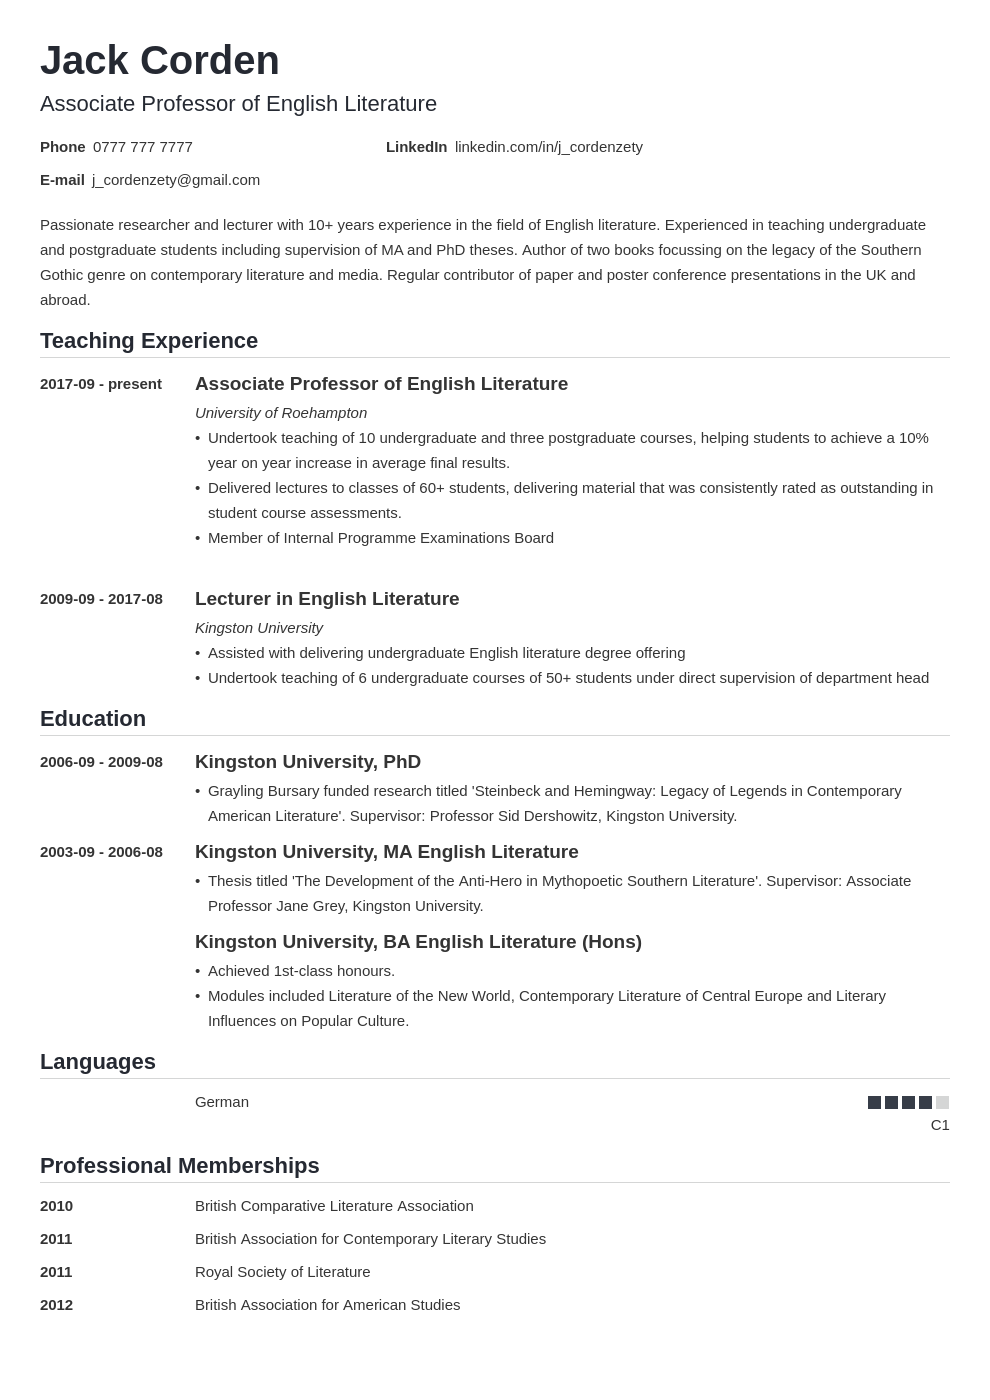 Academic Cv Curriculum Vitae Template Examples Guide